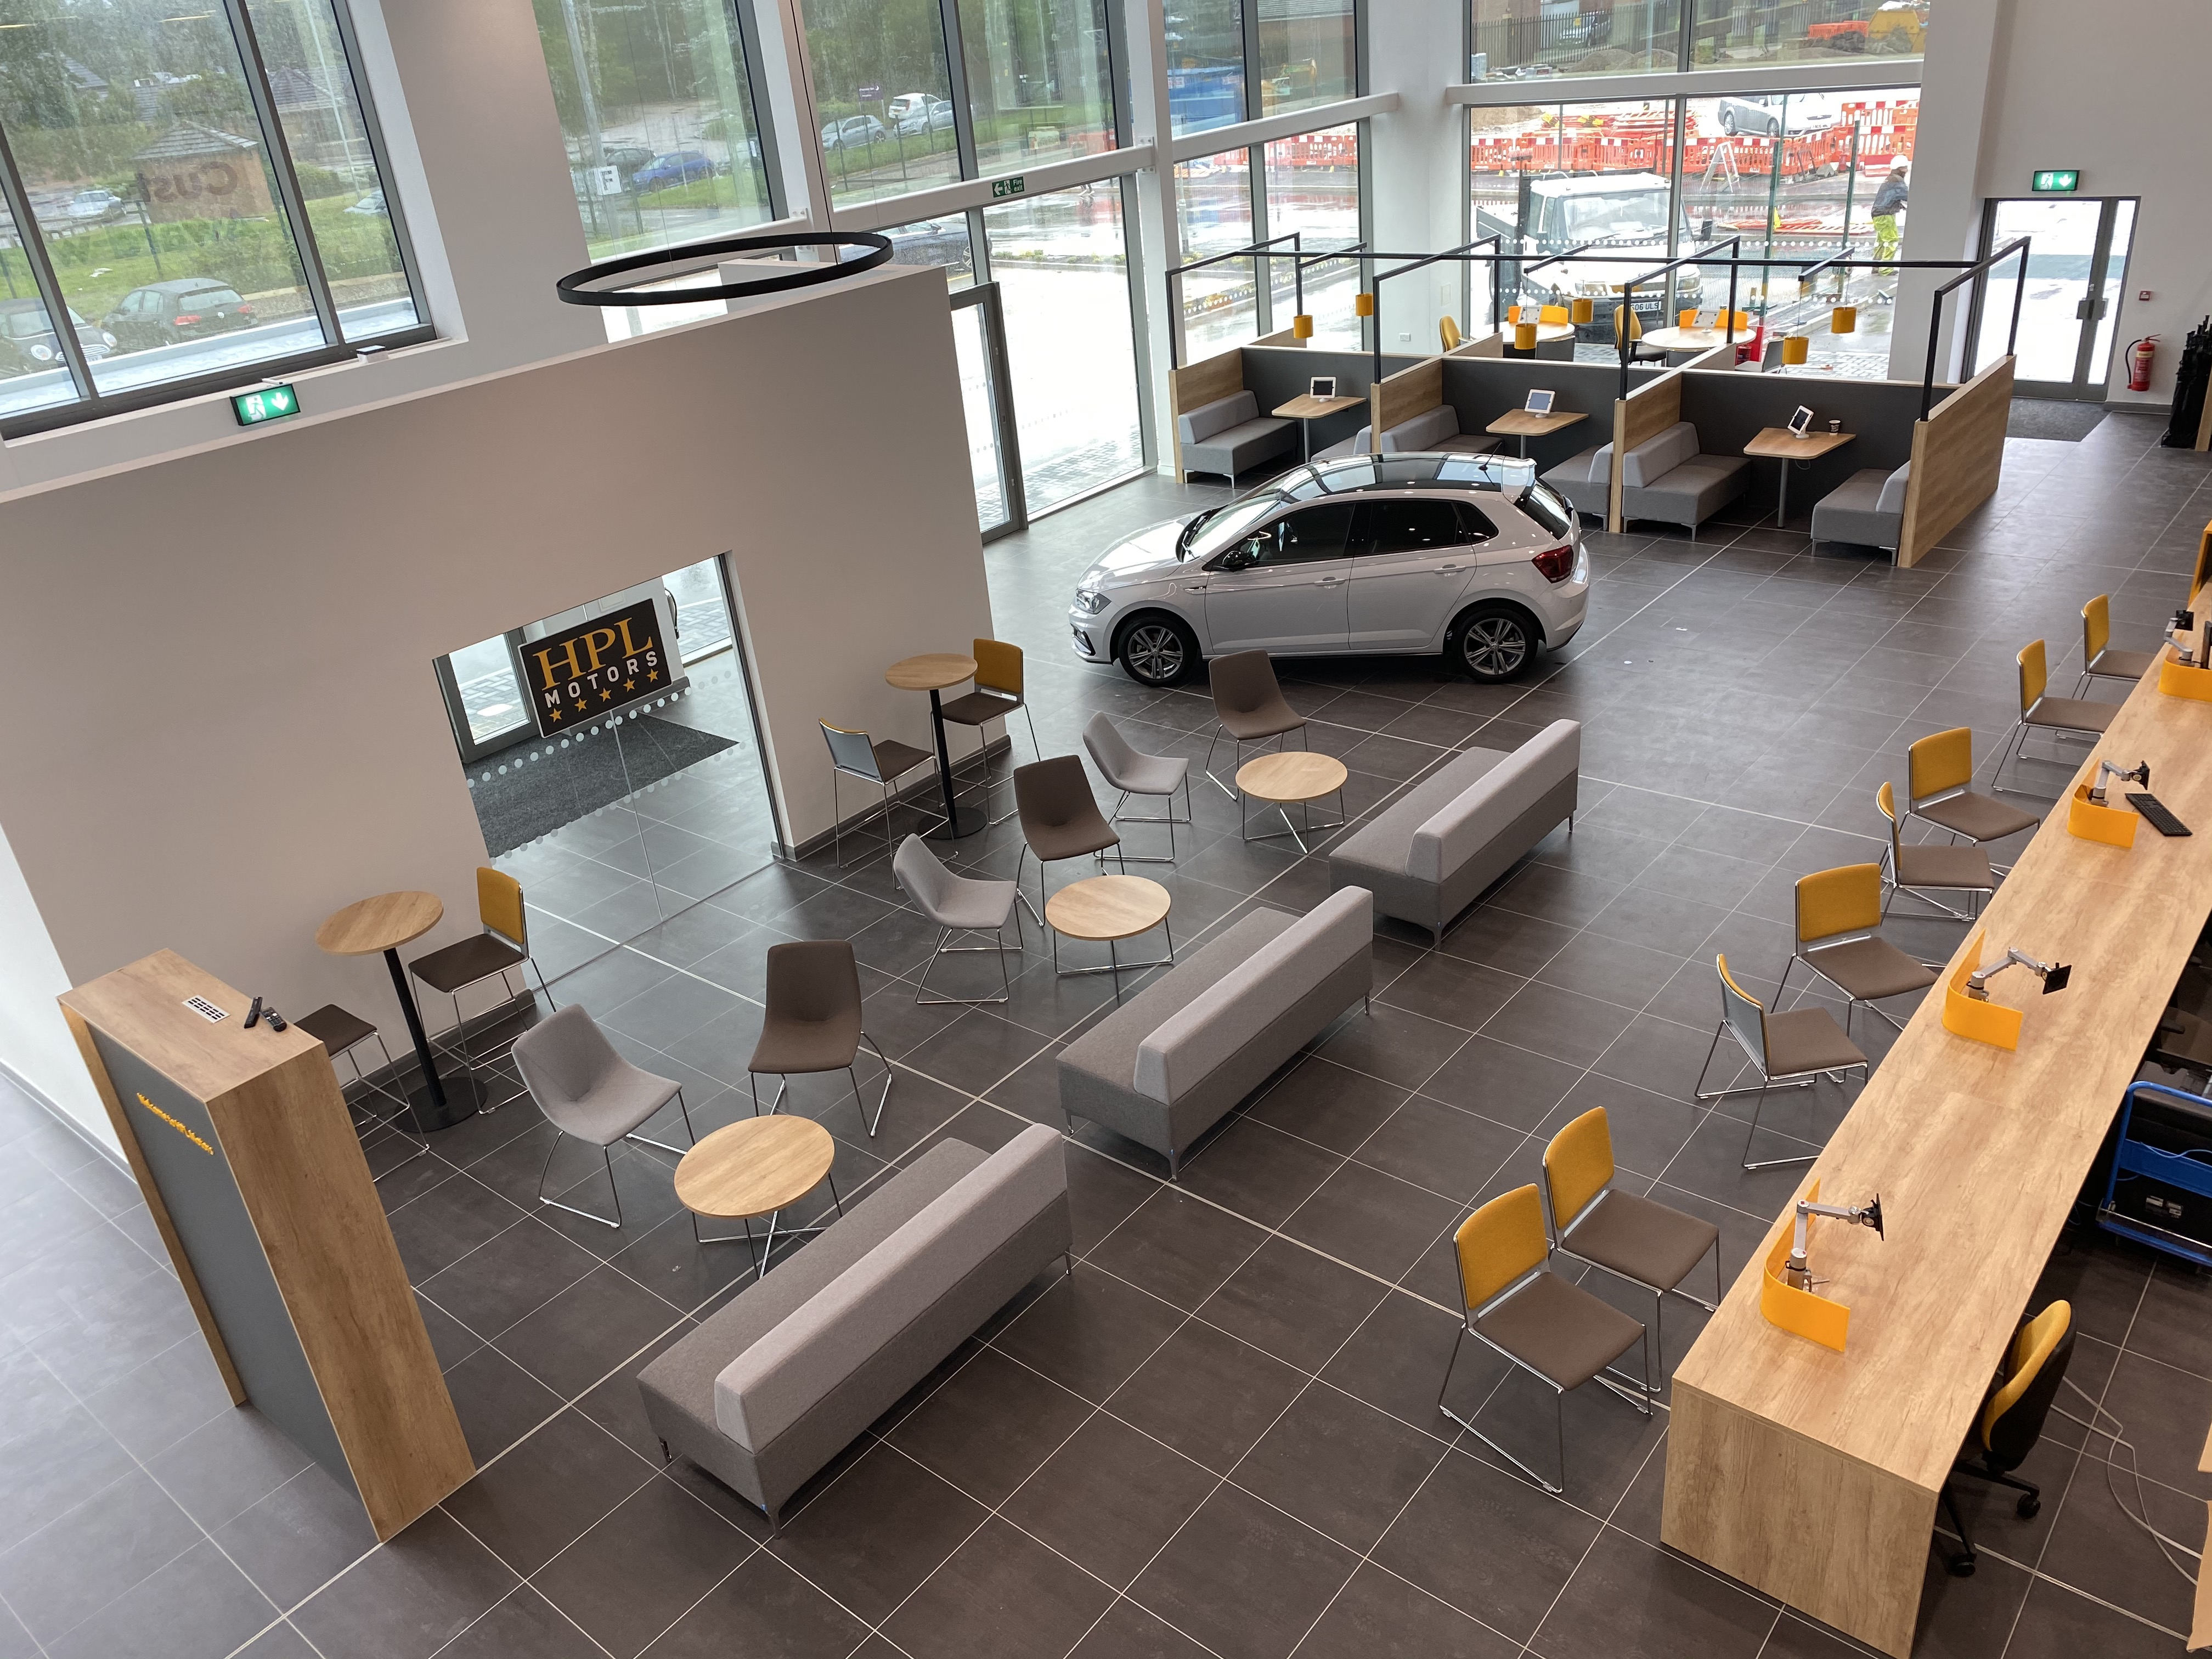 Interior of a HPL Motors Car Showroom with a Car and seating areas surrounding it